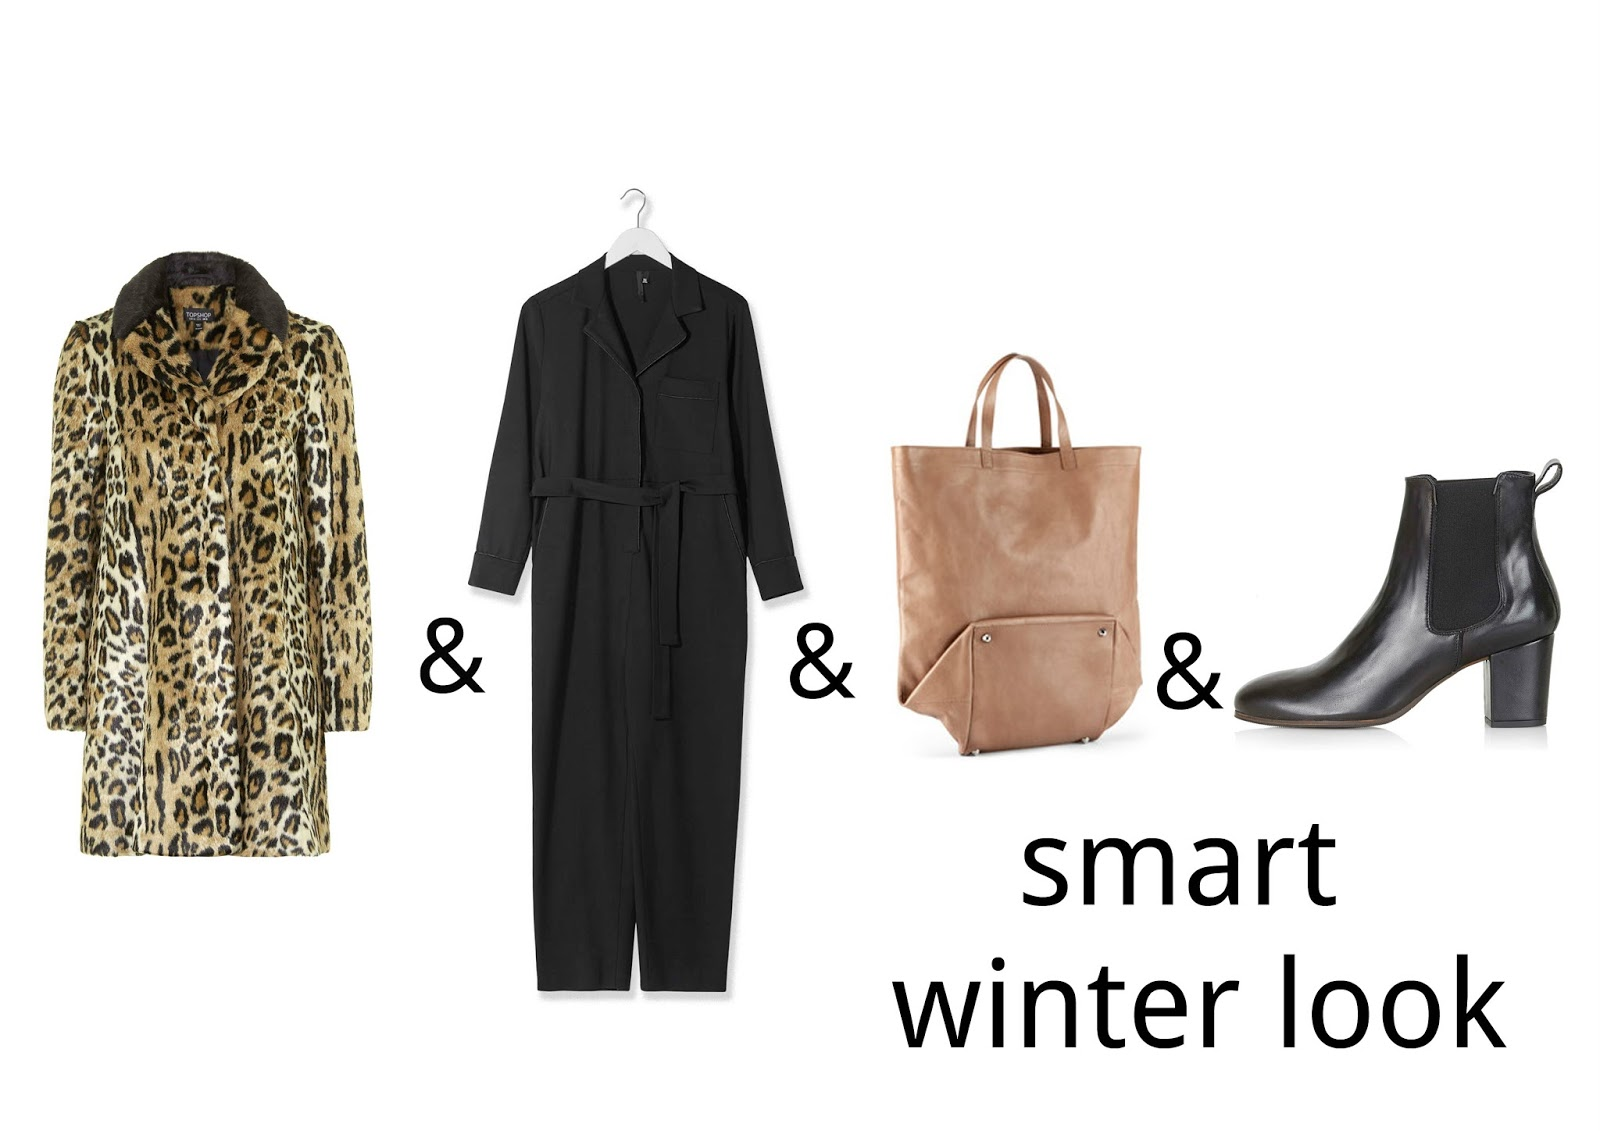 fashion maths, topshop, topshop boutique, topshop chelsea boots, jumpsuit, faux fur coat, leopard print, maison martin margiela for H&M bag